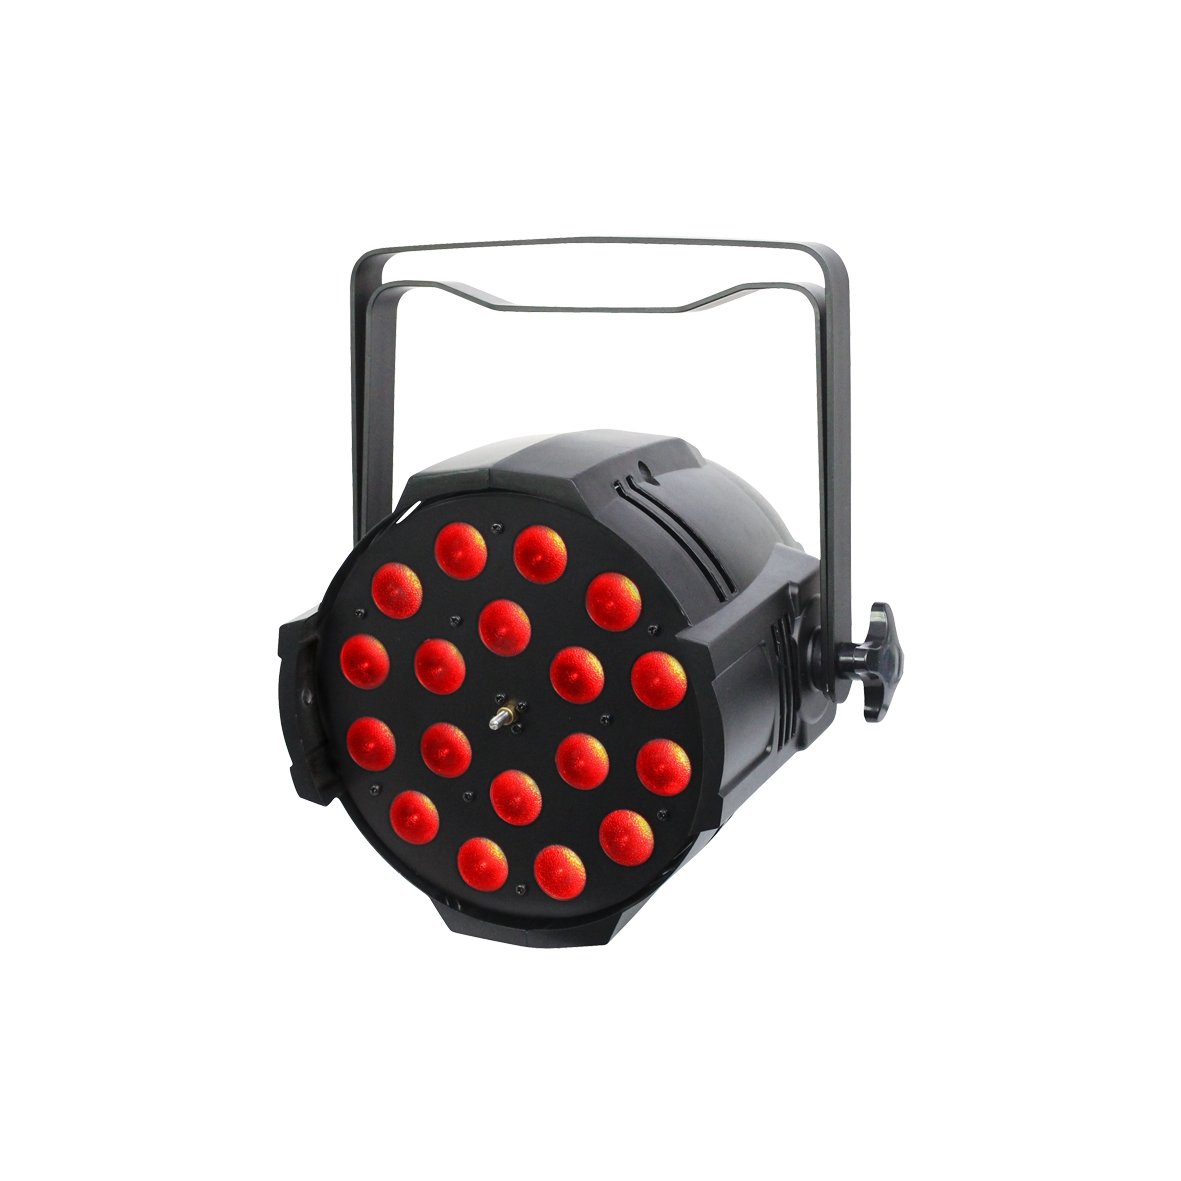 Performer 18 Quad LED PAR.